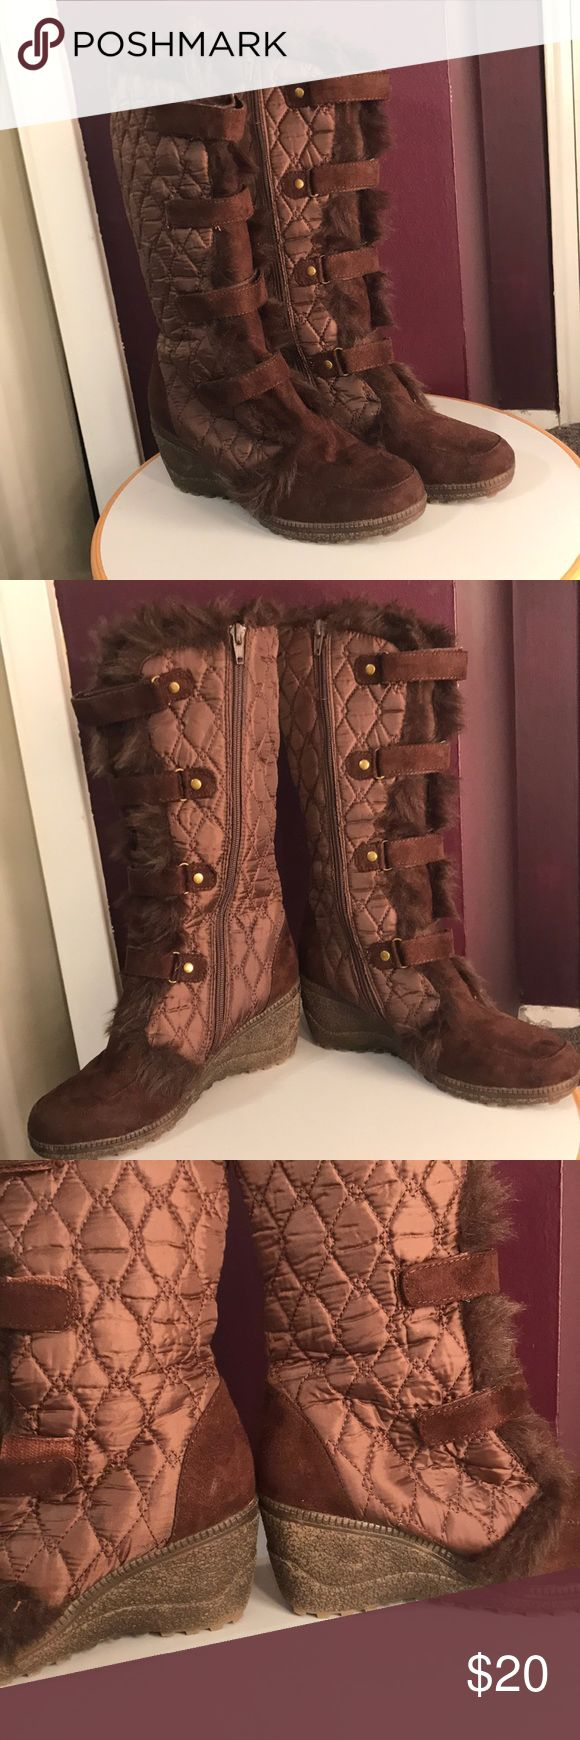 Brown zip up heel boots Size 7 Worn once, like new!! Fusion Brown zip up heel boots- gold buckles, brown straps (Velcro) fur and 2 inch wedge heel Size 7 Fusion Shoes Heeled Boots